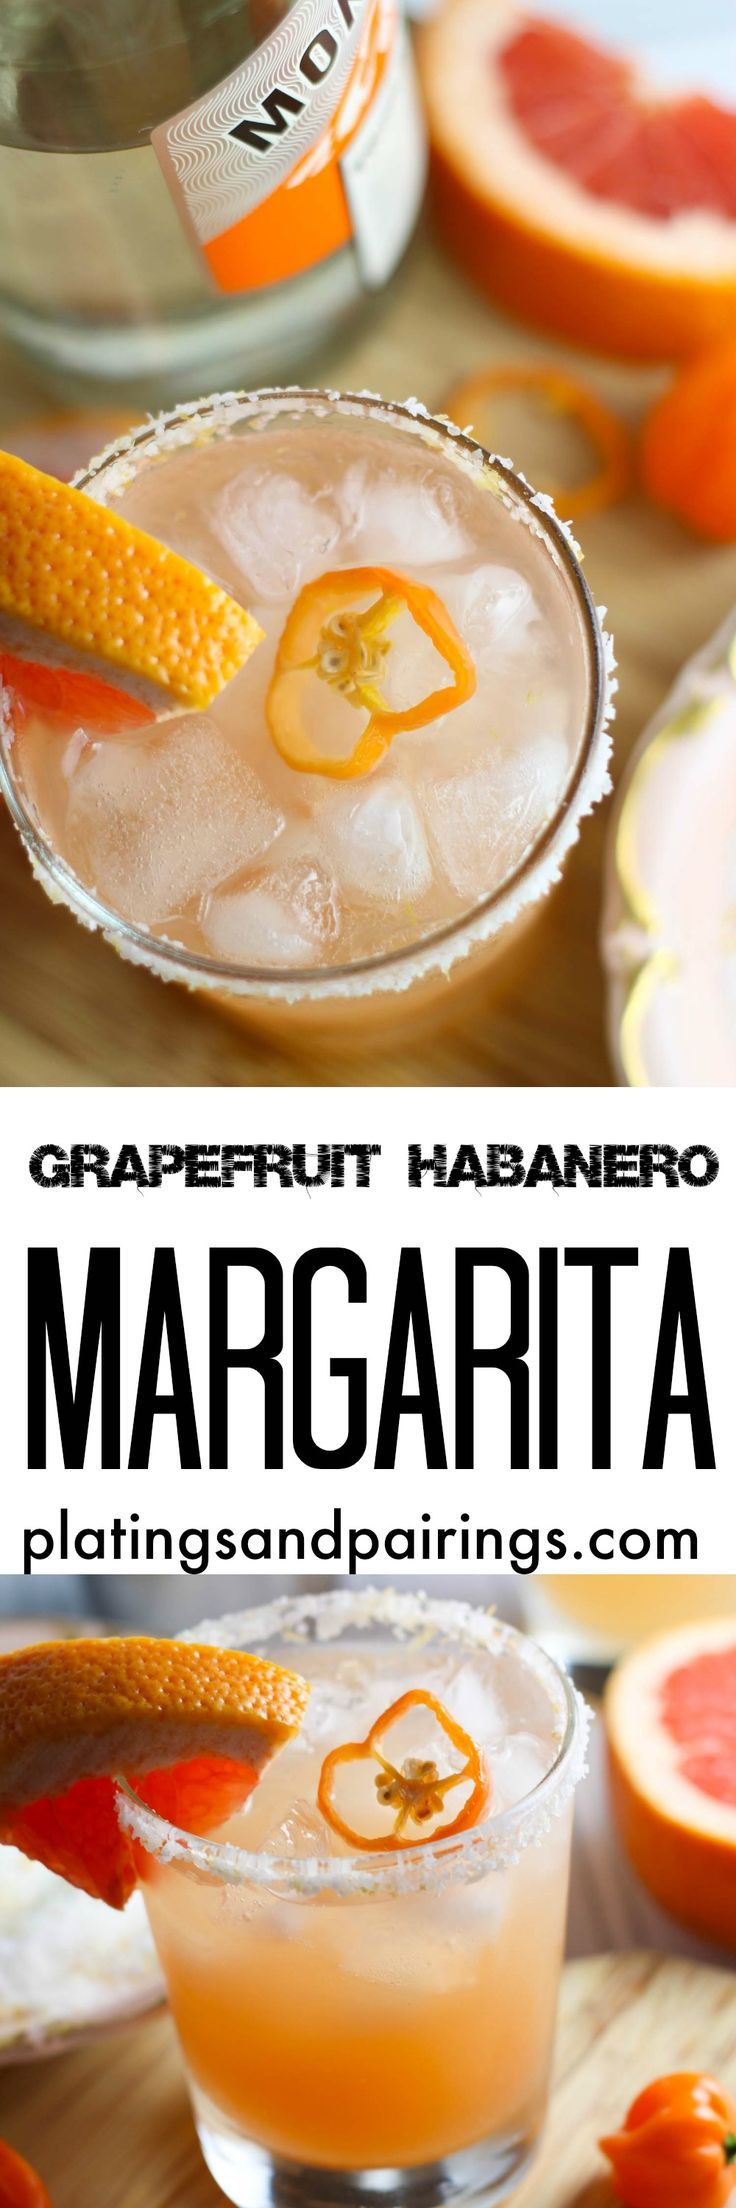 Grapefruit Habanero Margarita platingsandpairings.com